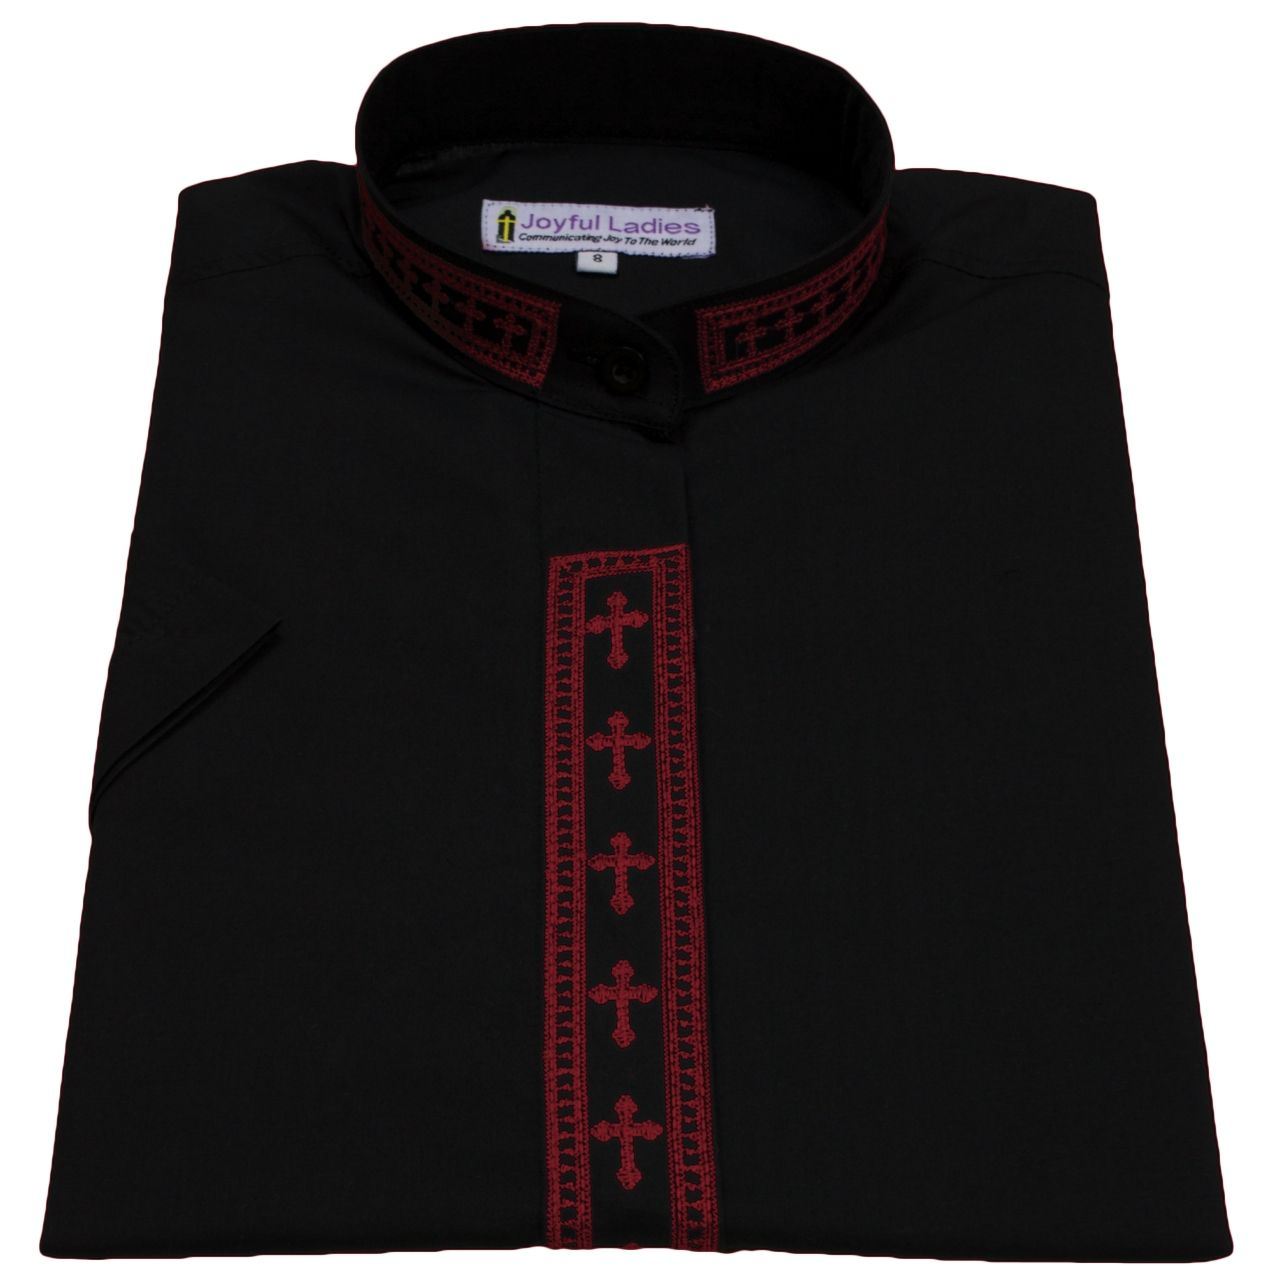 757. Women's Short-Sleeve Clergy Shirt With Fine Embroidery - Black/Red